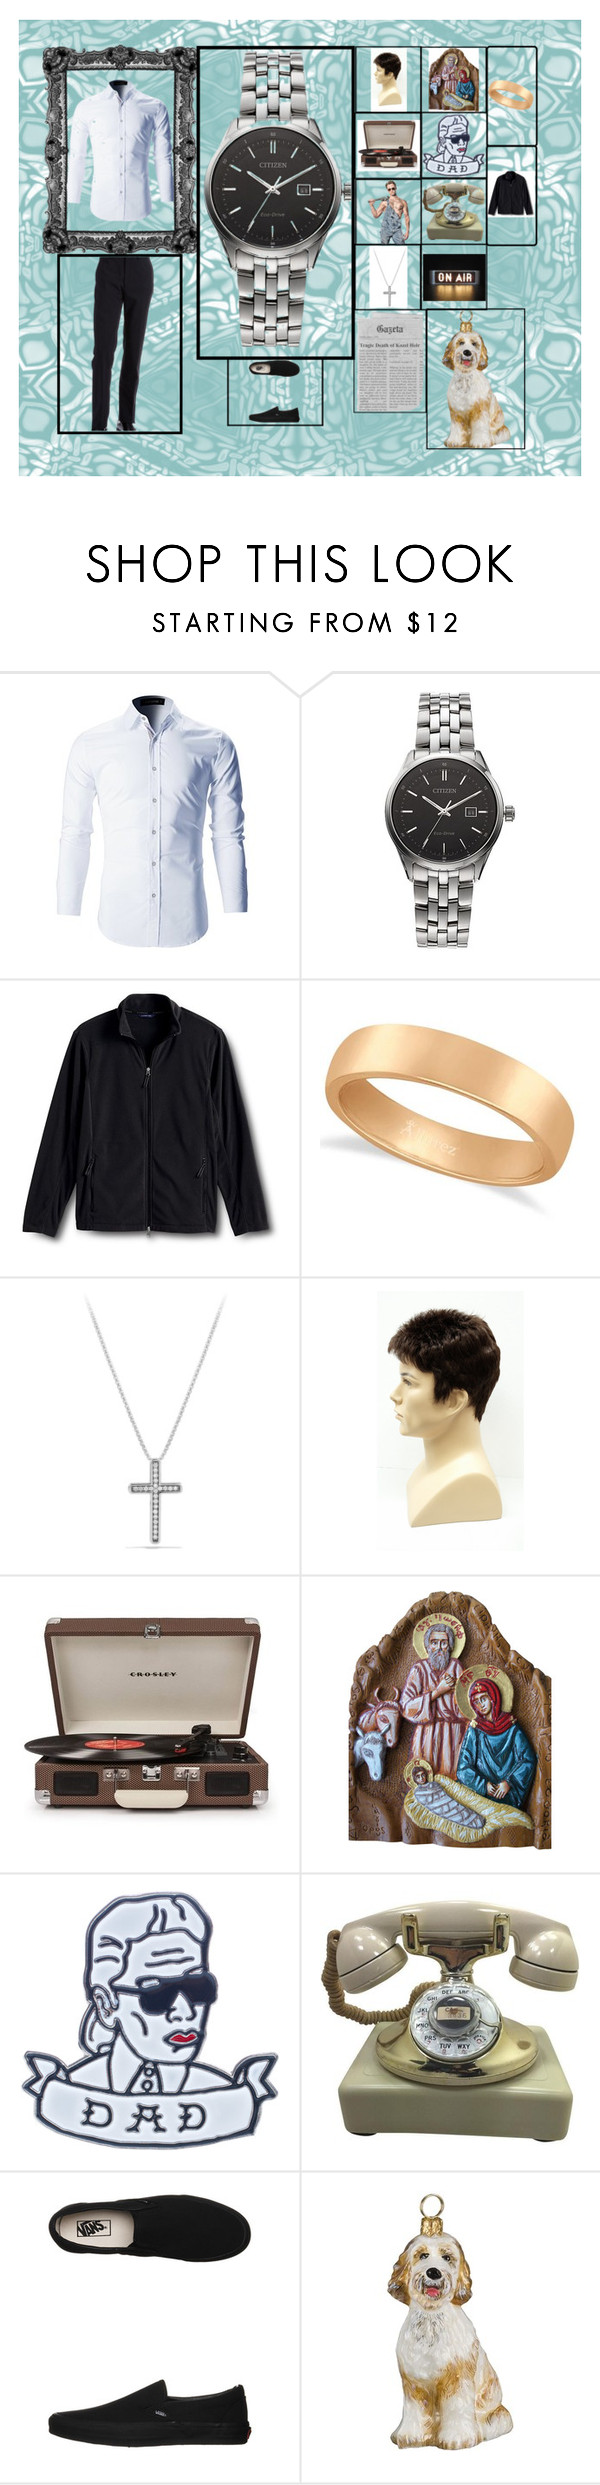 """my other grandfather"" by melissa-van-delft on Polyvore featuring Citizen, Lands' End, Allurez, David Yurman, Crosley Radio & Furniture, Petals and Peacocks, Vans, Joy To the World, MICHAEL Michael Kors en men's fashion"